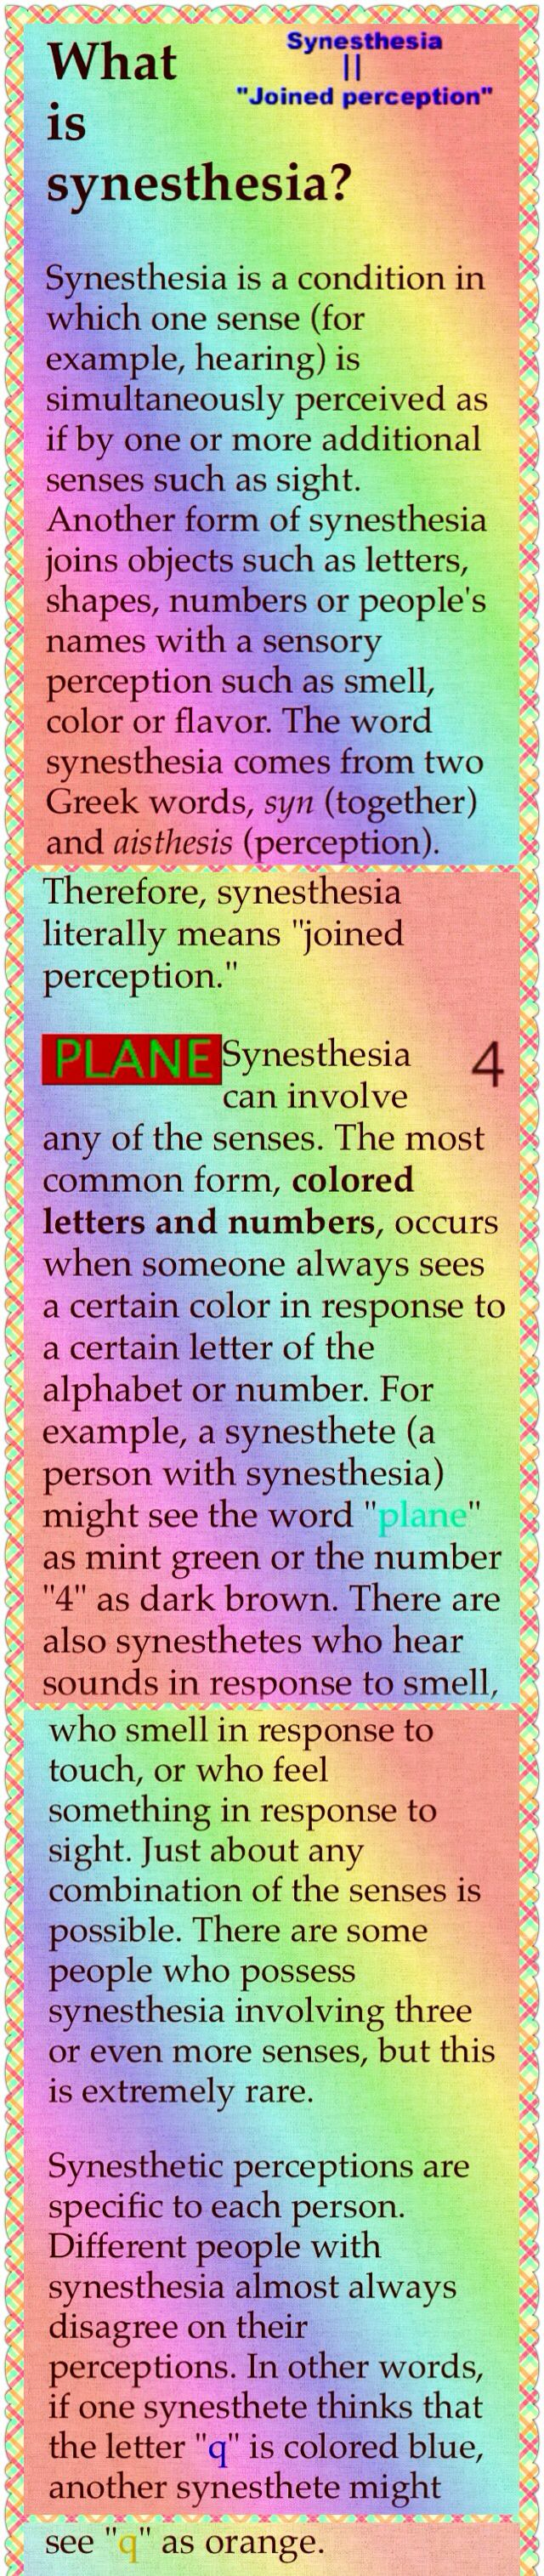 65 best Synesthesia images on Pinterest | Psychology, Colours and ...